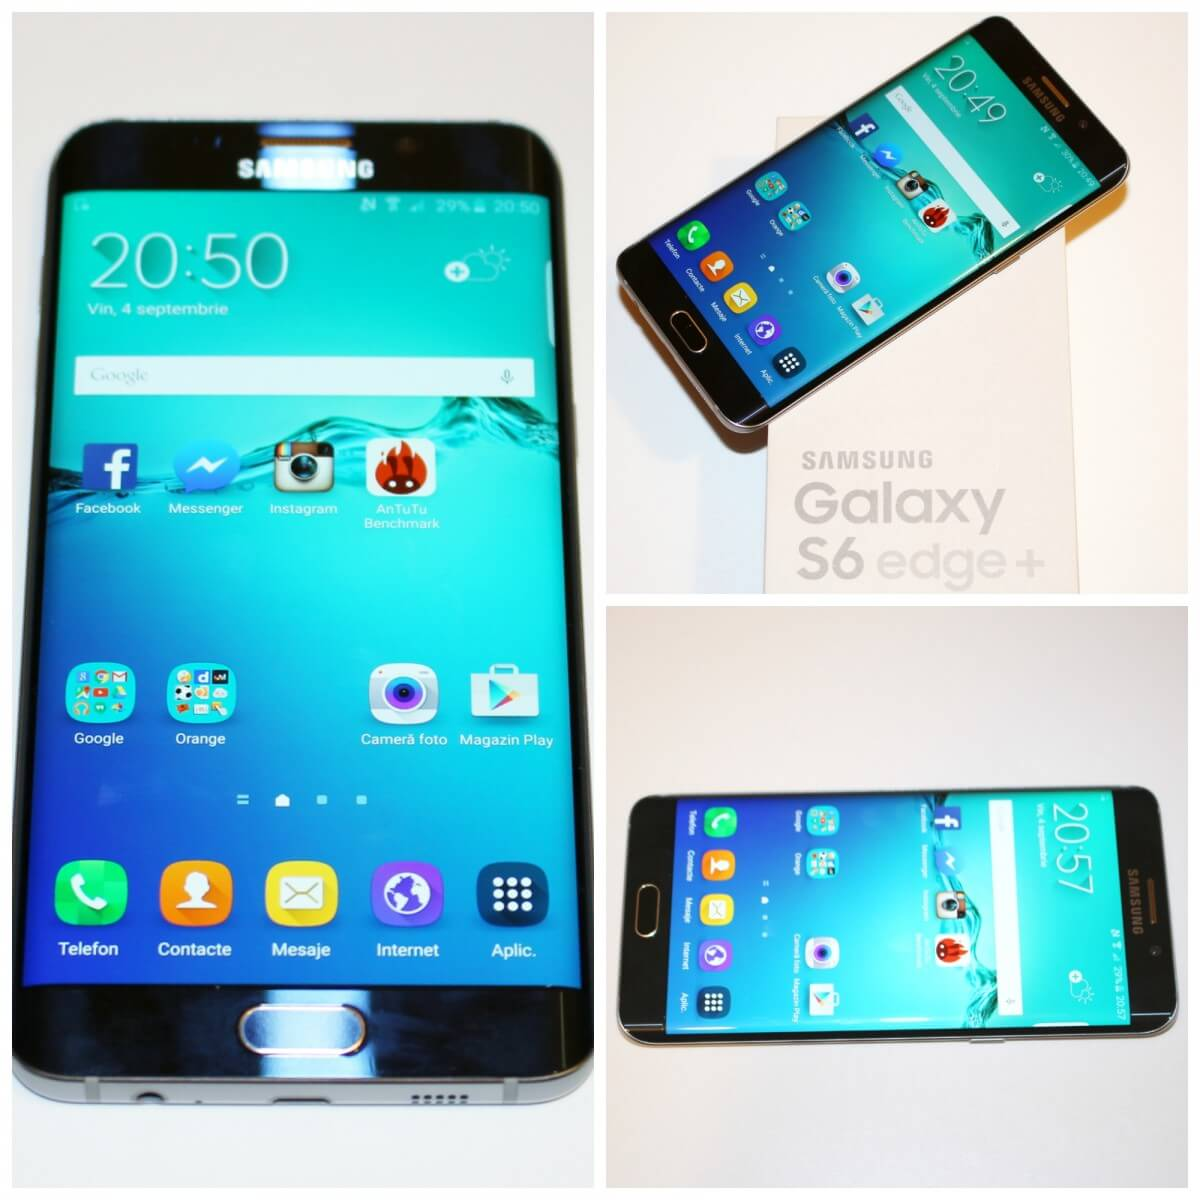 Samsung Galaxy S6 edge + Orange Smartphone Tester